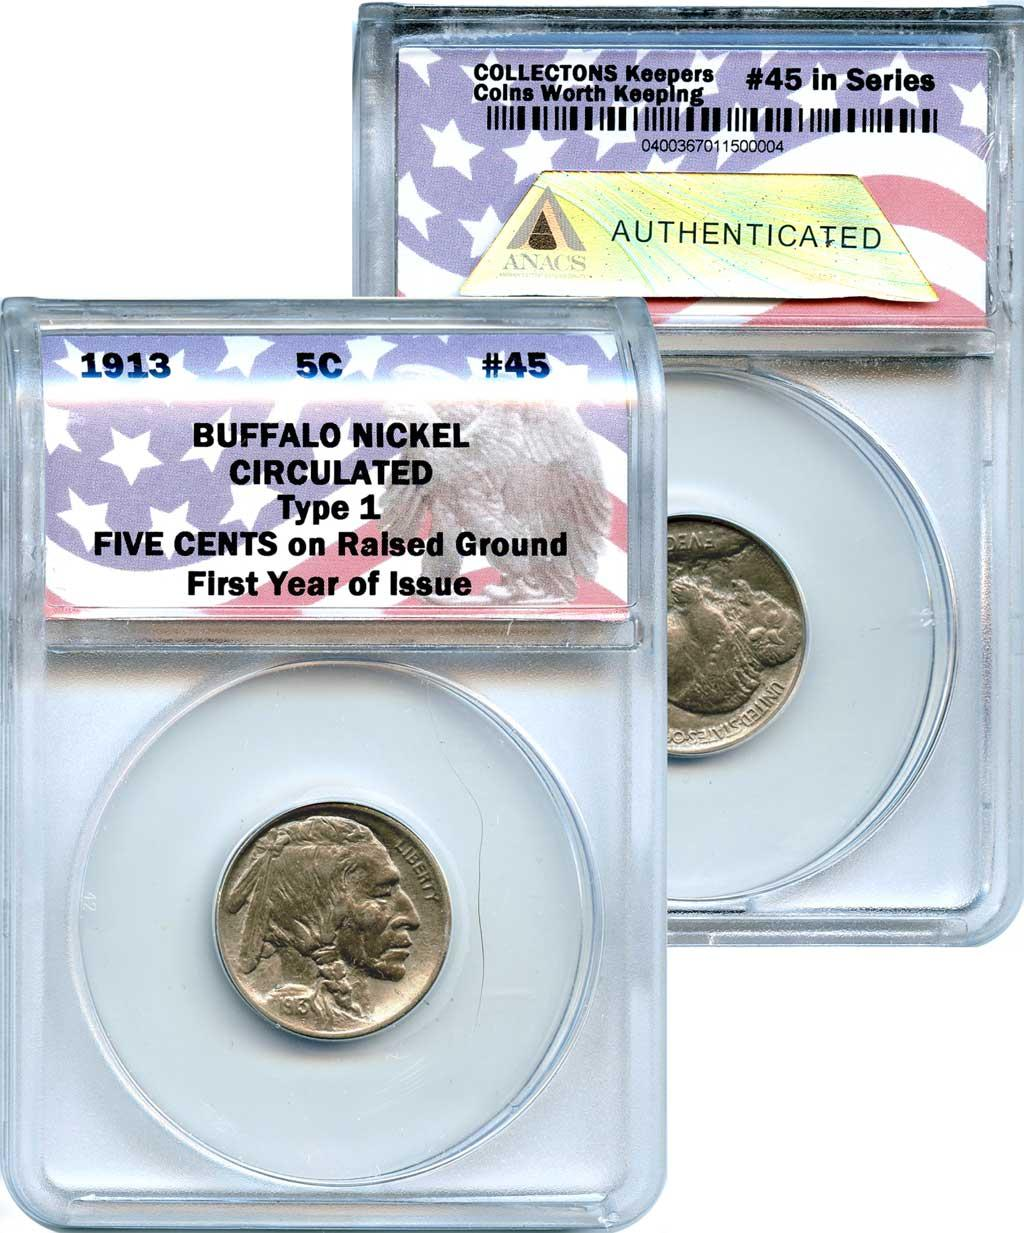 CollecTons Keepers #45: 1913 Type I Buffalo Nickel Certified in Exclusive ANACS Holder